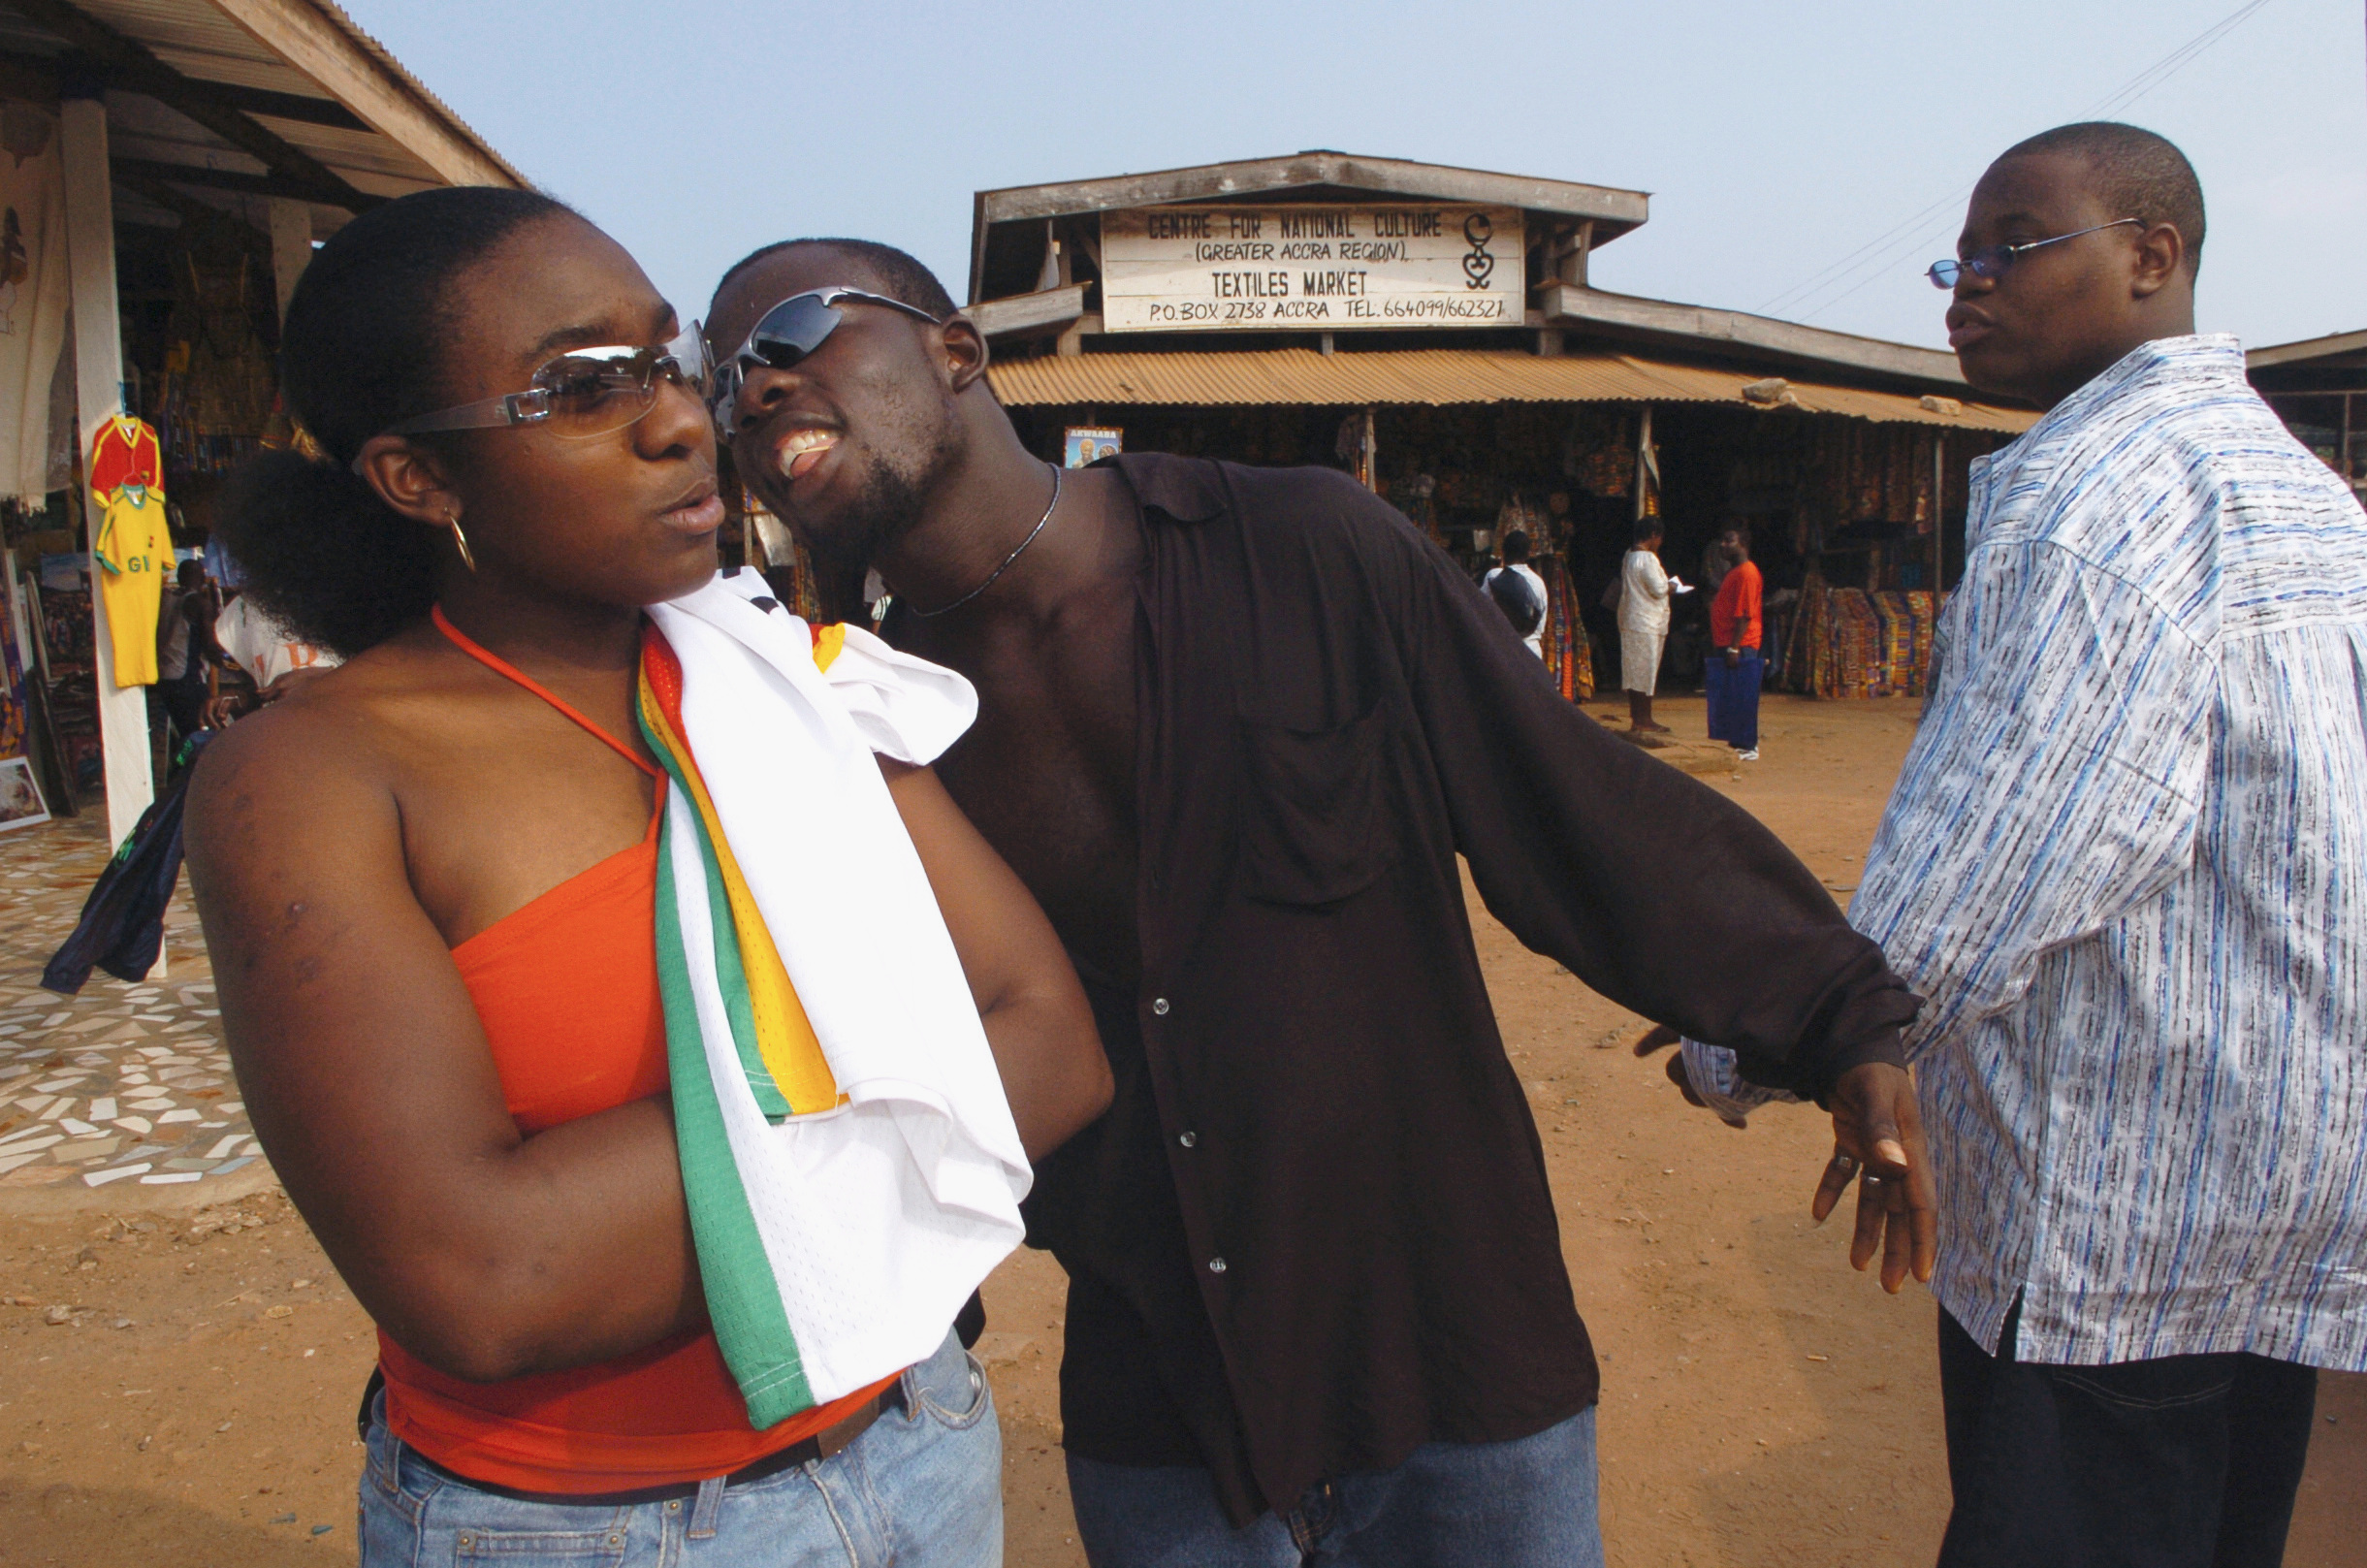 A merchant at the Arts Centre in Accra, middle, tries to sell Amanda Pruitt, 16, of Syracuse, a T-shirt as Le'Shem Escoffery (right) looks on. The teens were traveling with Africa Bound, a cultural education program.